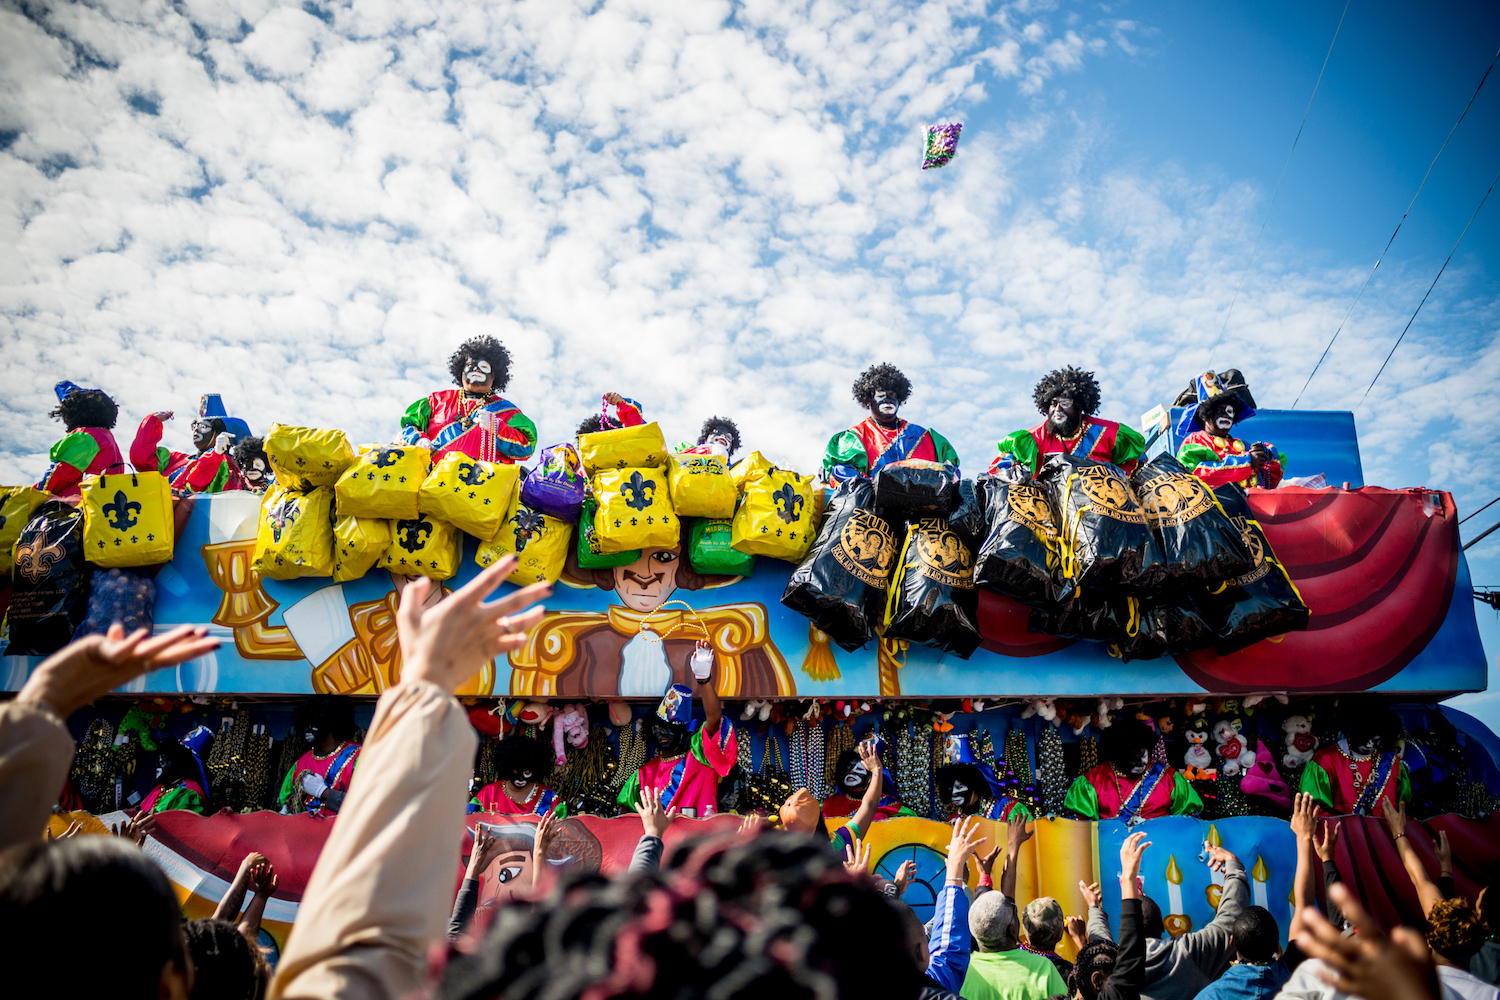 TOPSHOT - People reach out for beads as the Zulu Parade runs through New Orleans on Mardi Gras, February 13, 2018. / AFP PHOTO / 00059360A / Emily Kask        (Photo credit should read EMILY KASK/AFP/Getty Images)